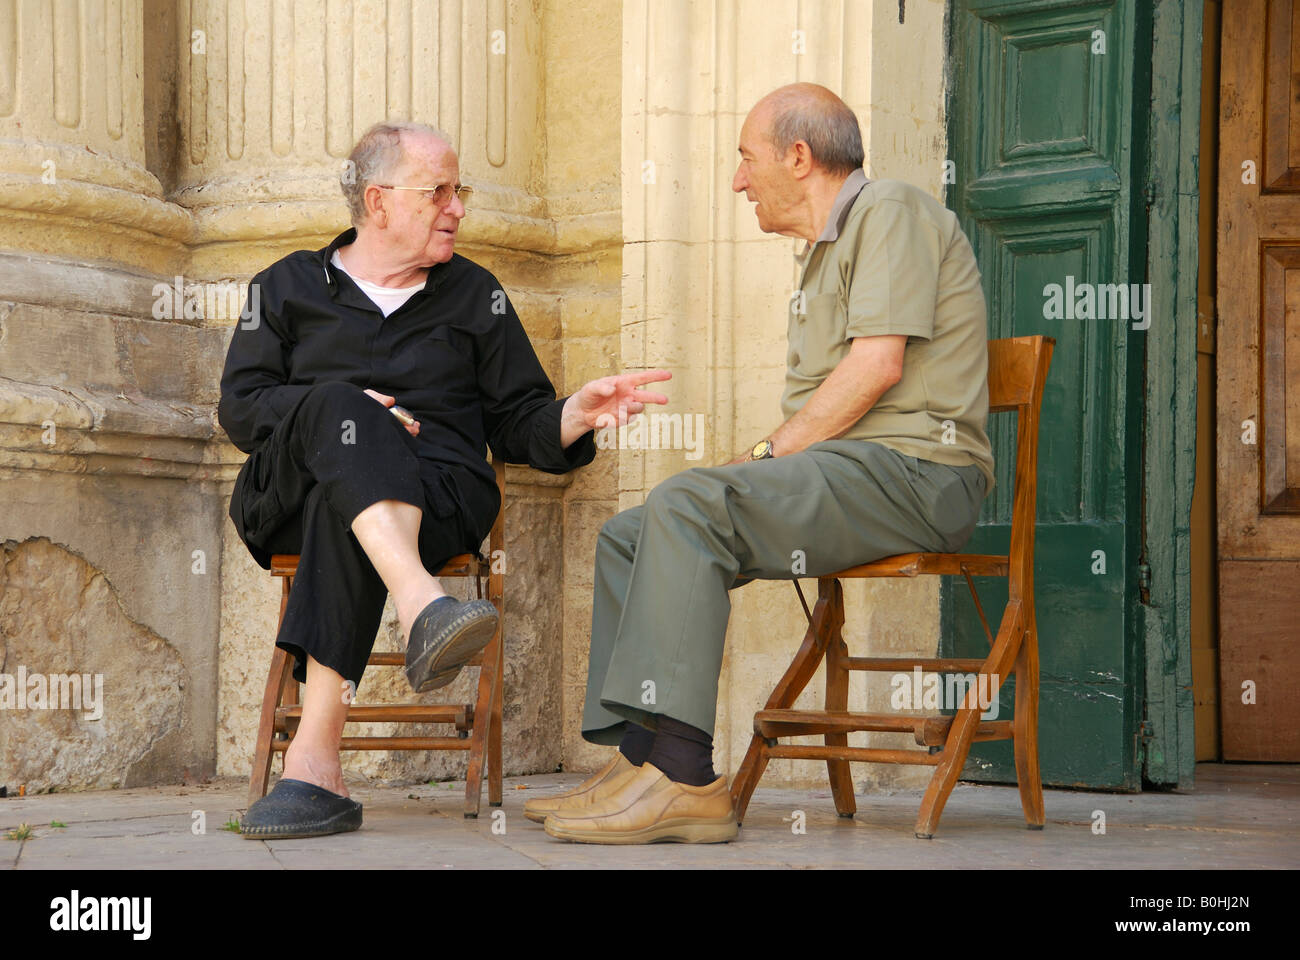 Two old men chatting, Lecce, Apulia, South Italy, Italy, Europe - Stock Image